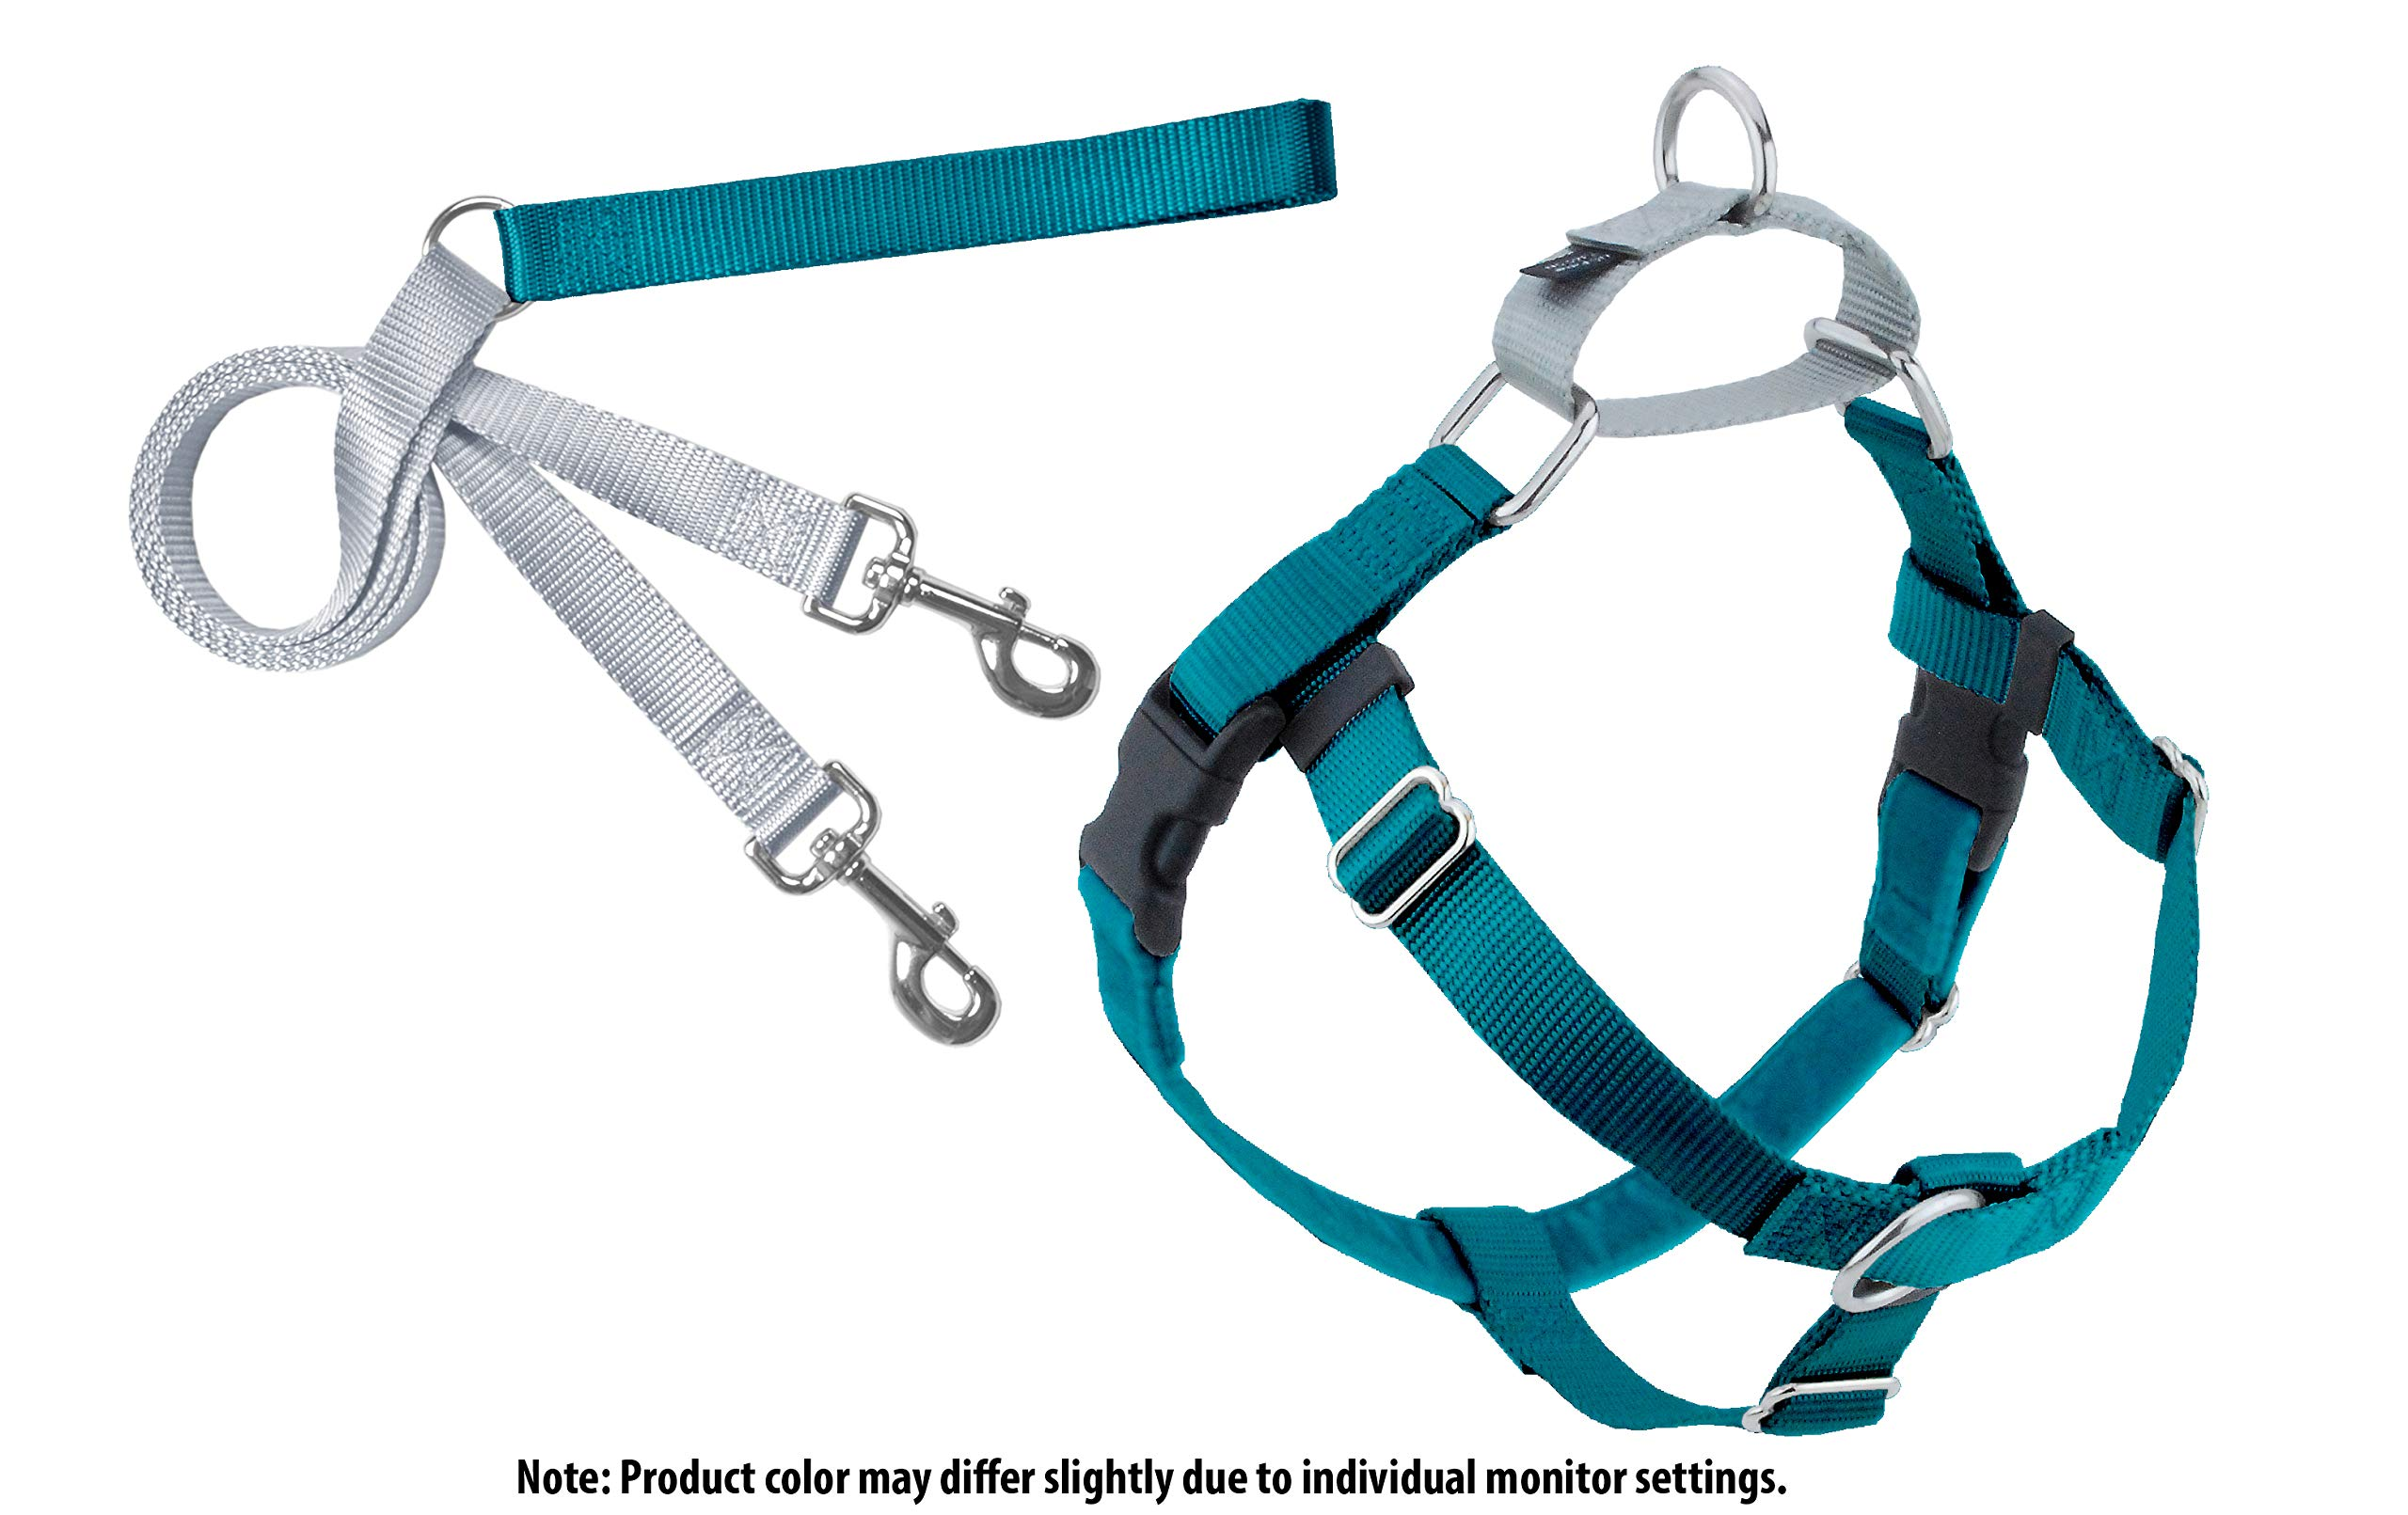 2 Hounds Design Freedom No-Pull Dog Harness and Leash, Adjustable Comfortable Control for Dog Walking, Made in USA (Small 5/8'') (Teal)